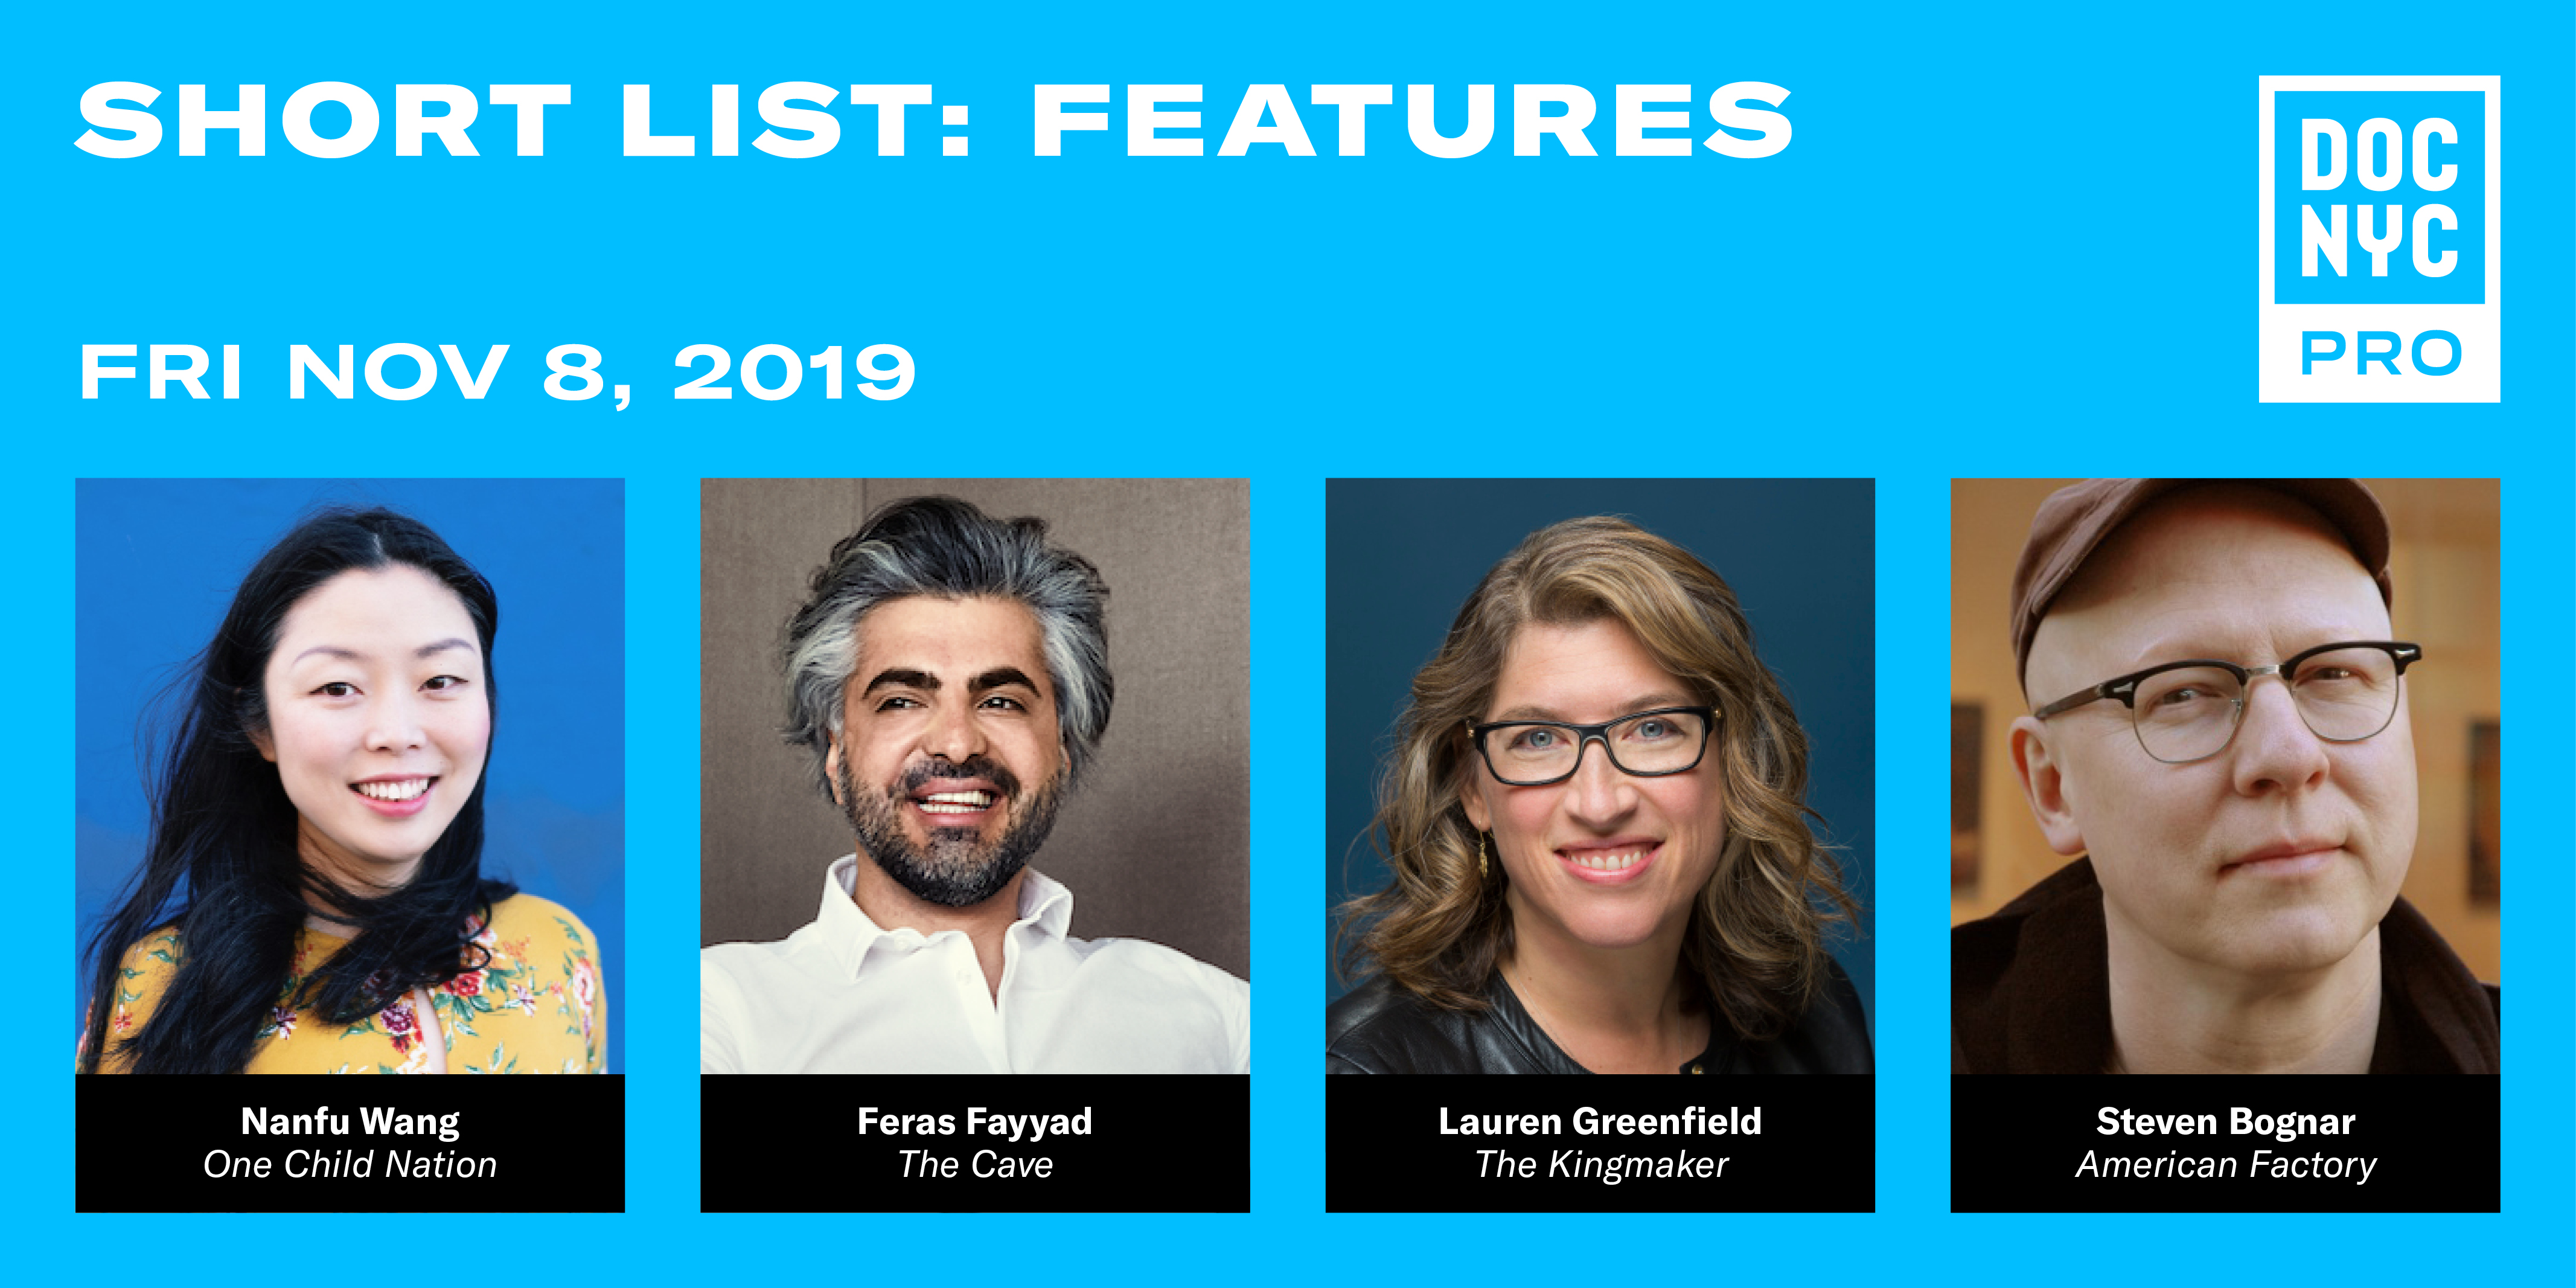 DOC NYC PRO: SHORT LIST: FEATURES